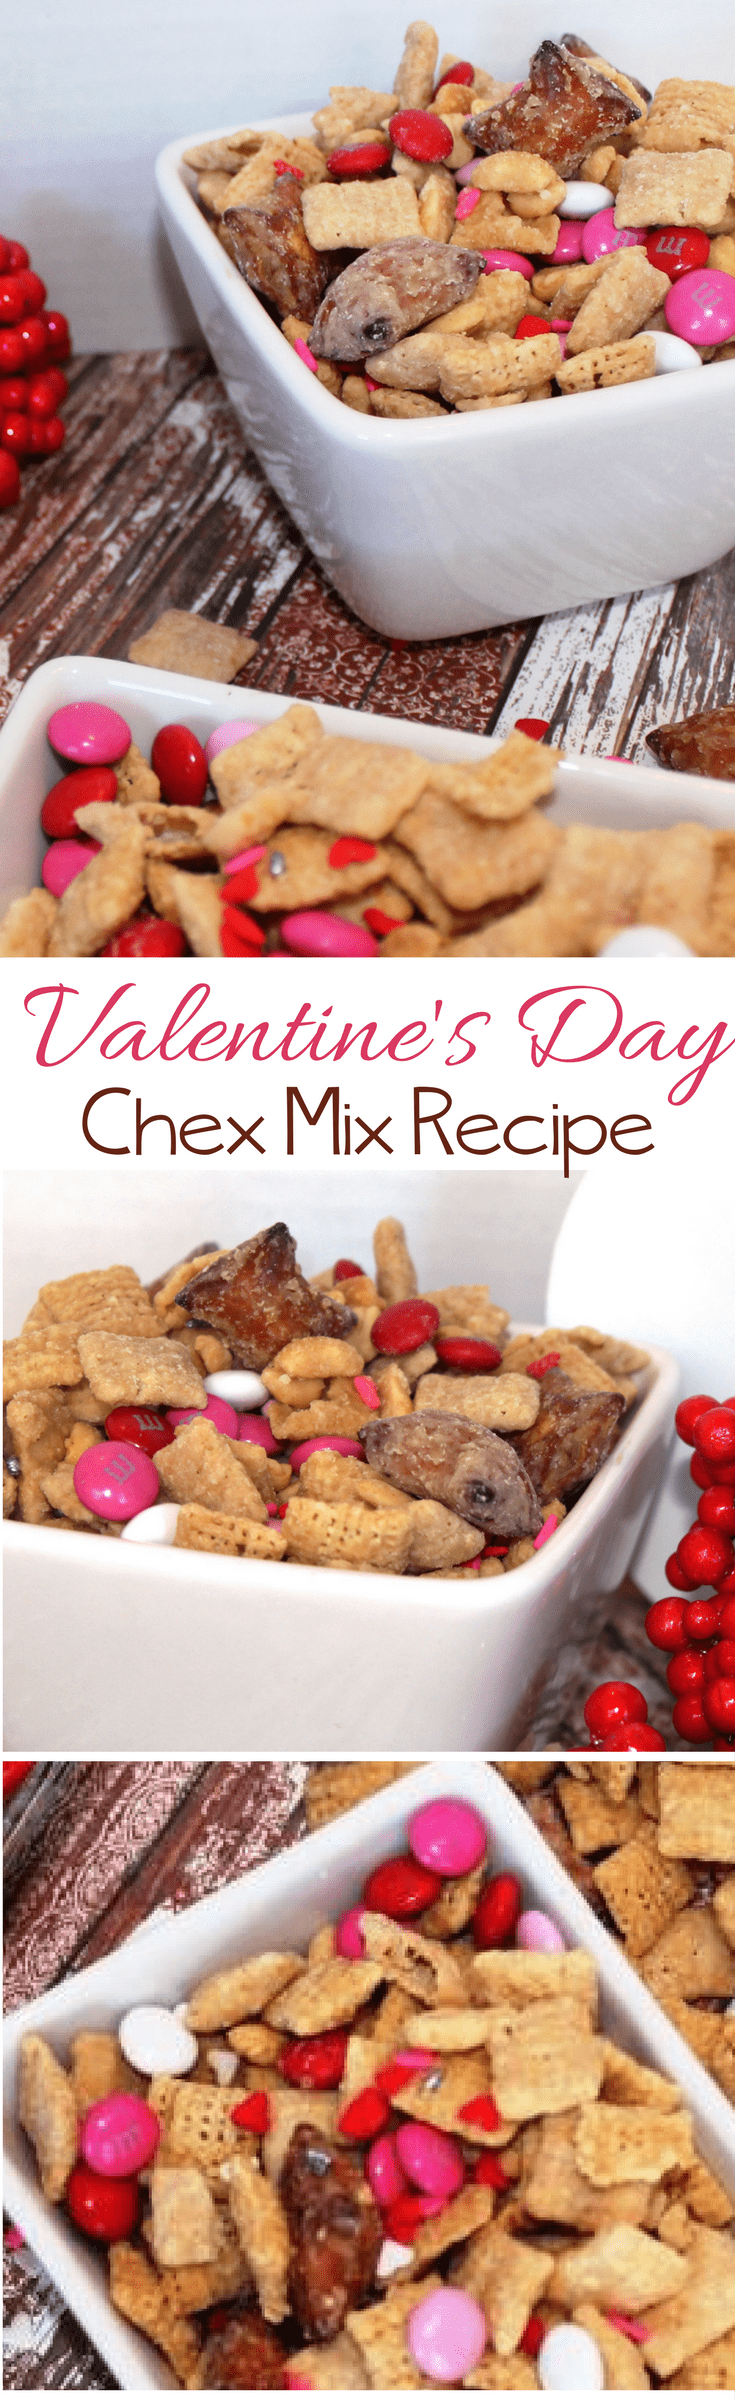 Sweet and Salty Valentine Chex Mix Recipe includes pretzels, pink candies, and white powdered sugar.  The peanut butter filled nuggets add just enough salt to this sweet Valentine Chex Mix Recipe to tone down the sweetness!